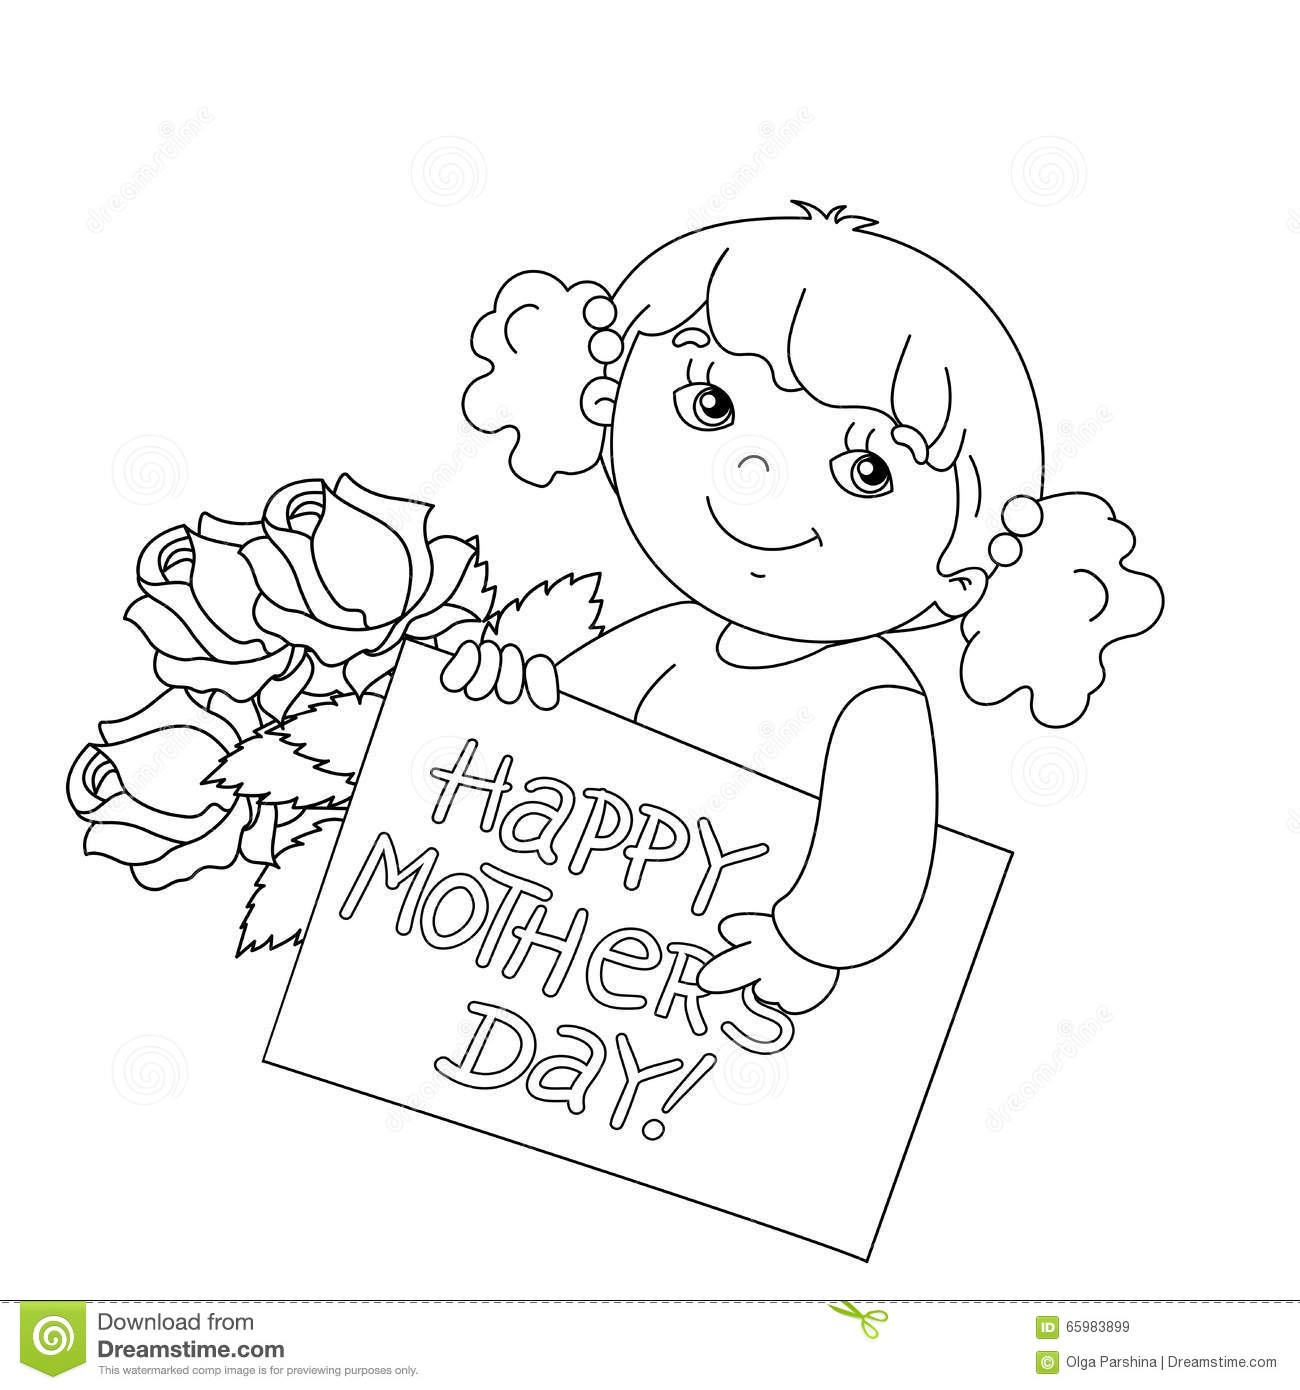 together with  likewise roses coloring pages for adults free printable 9466 moreover  moreover  also white rose of york colouring page 460 1 besides il 570xN 185978053 as well  moreover Free Valentines Day clip art 7 besides  besides my little pony sweetie belle coloring pages printable. on coloring pages with s and roses